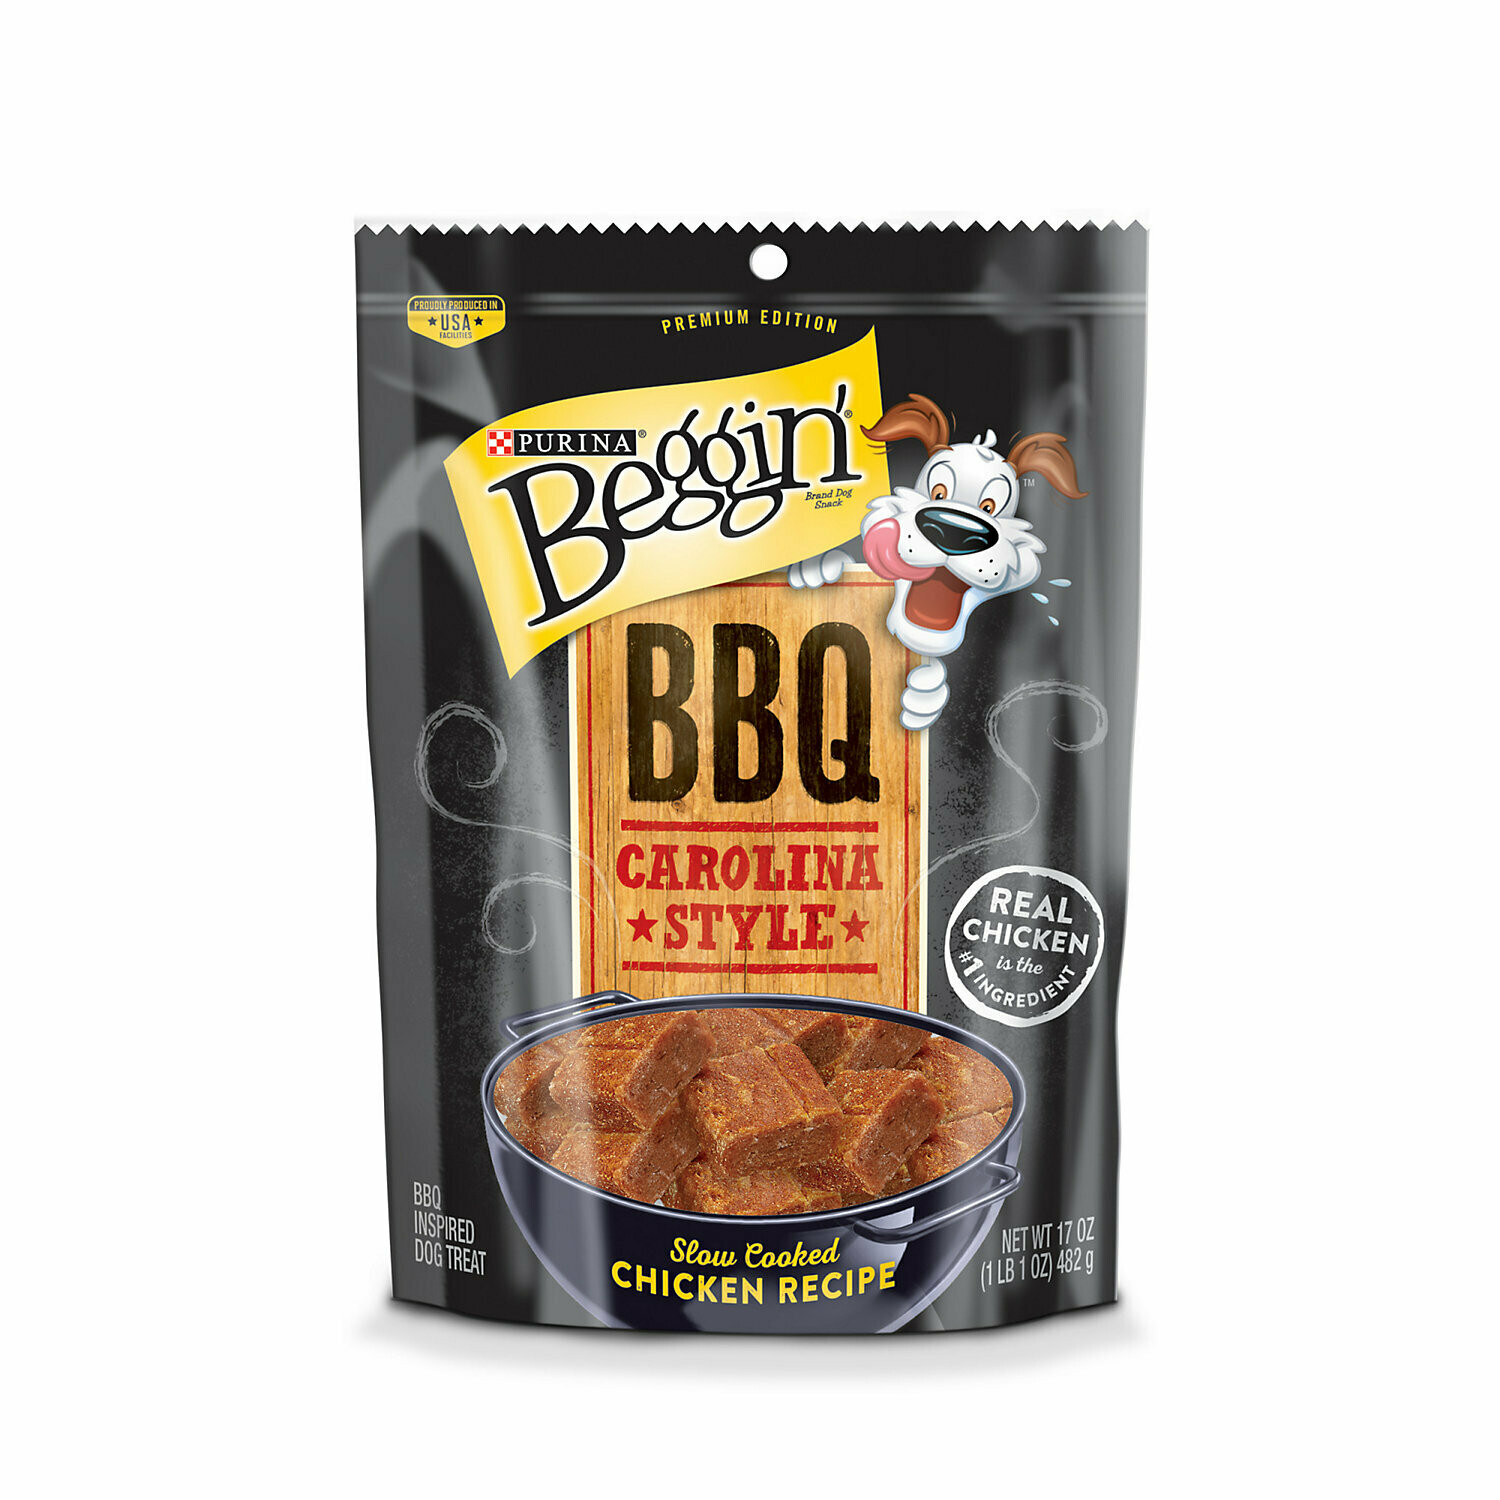 Purina bag and barbecue Carolina style real chicken is the first ingredient slow-cooked chicken recipe dog treat 1 lb. 1 oz. (1/20)